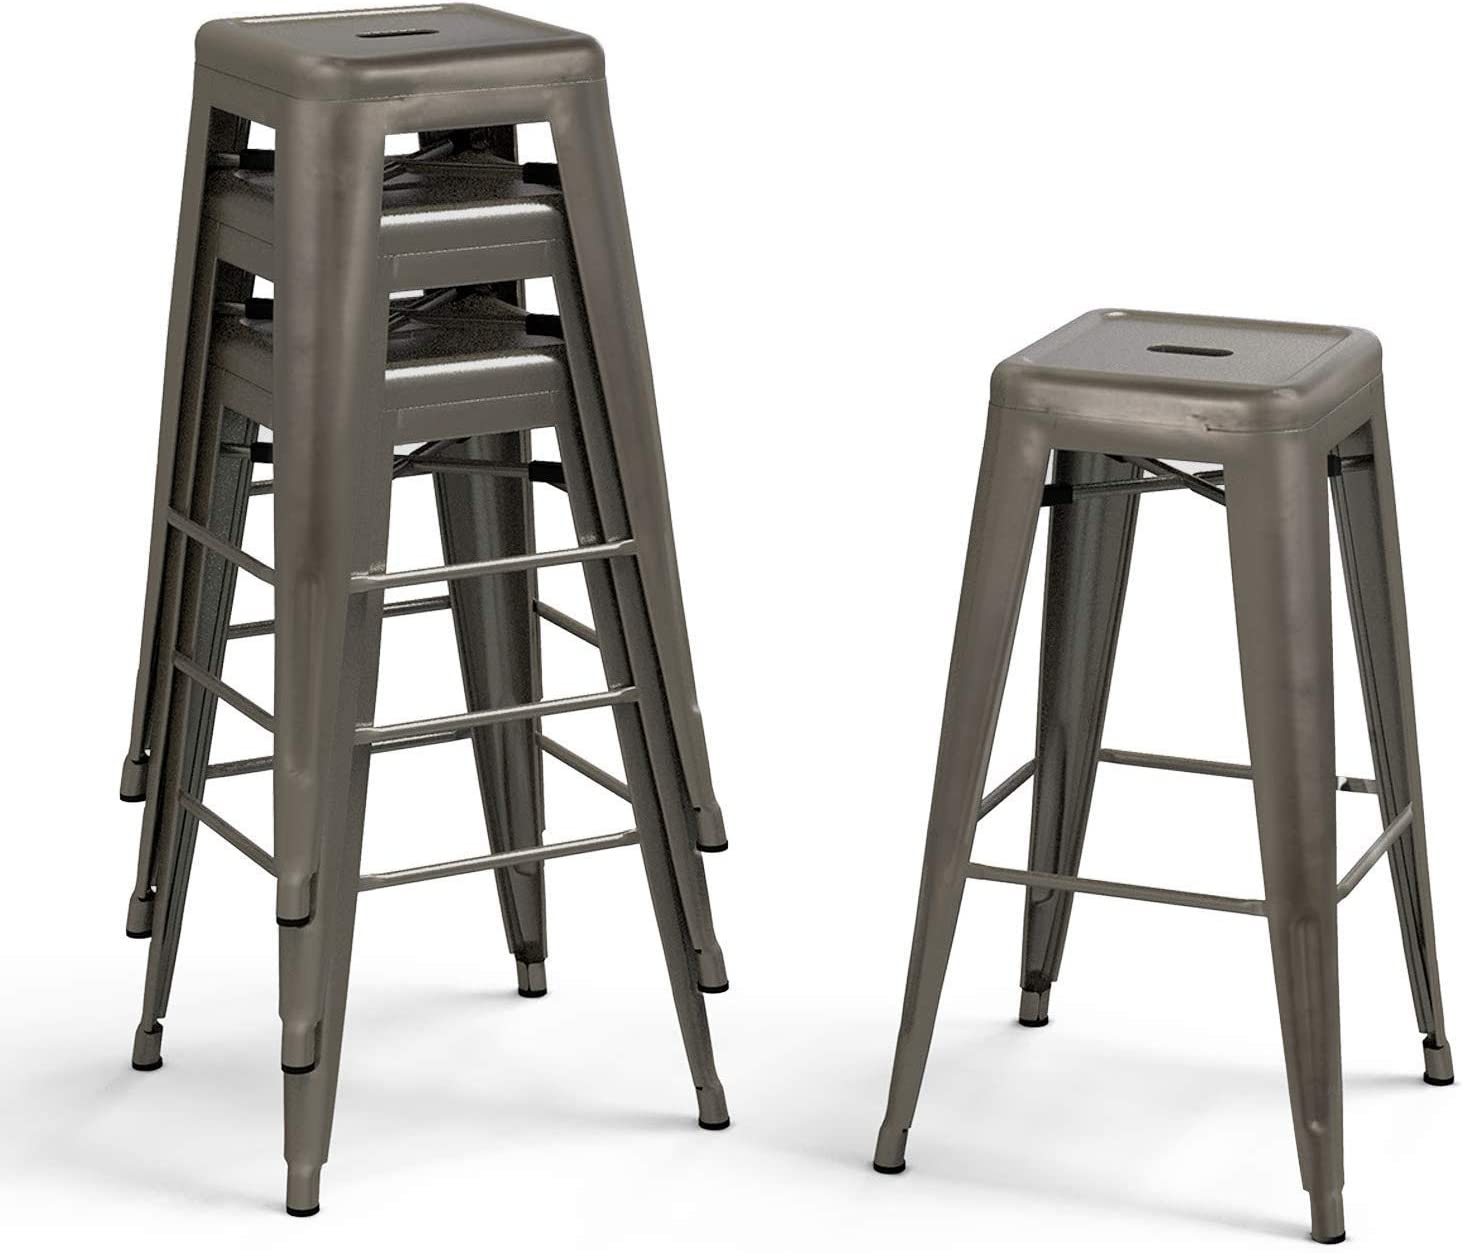 Bonzy Home Bar Stools Set of 4, 30 inches Metal Bar Stool Chair, Stackable Counter Height Barstools, Farmhouse Barstool for Kitchen and Outdoor Patio Furniture – Gunmetal